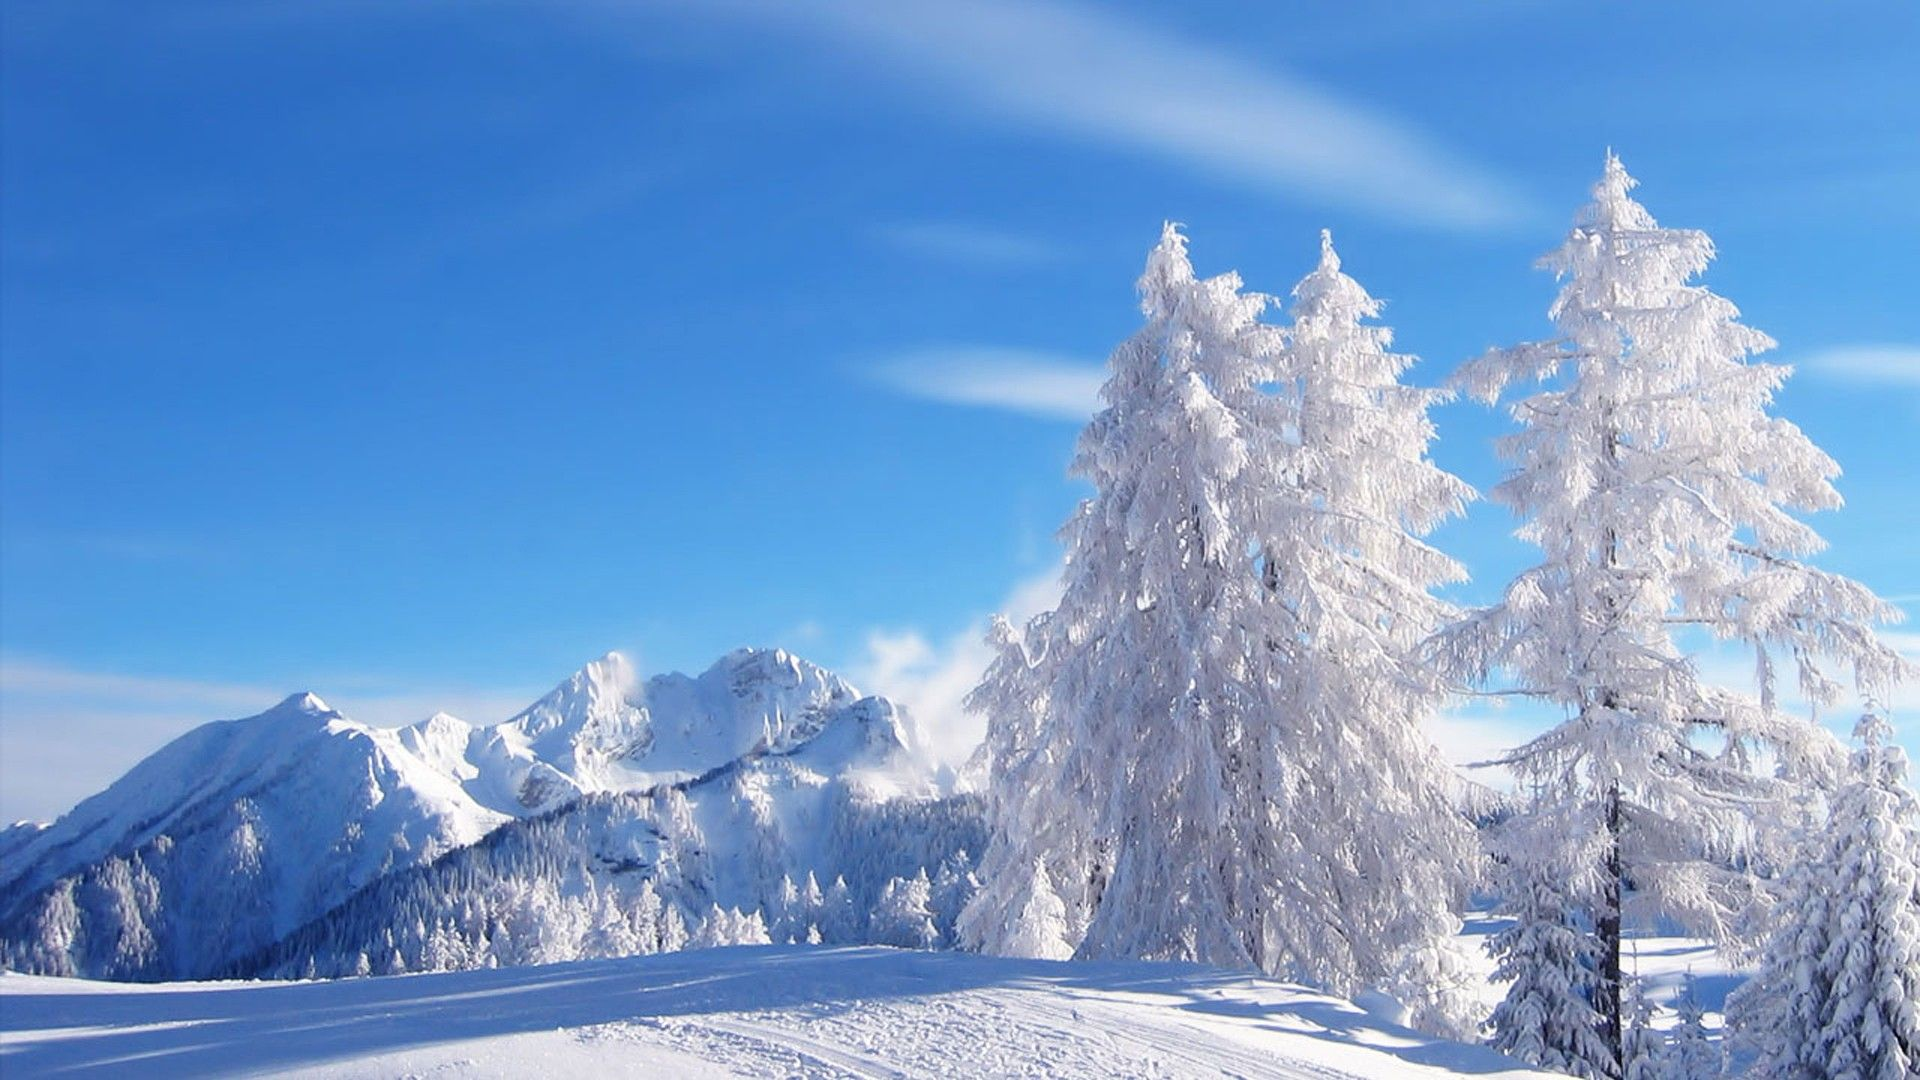 Beautiful Winter Scenery Wallpaper Snowfall Beauty Of Nature In Sunlight